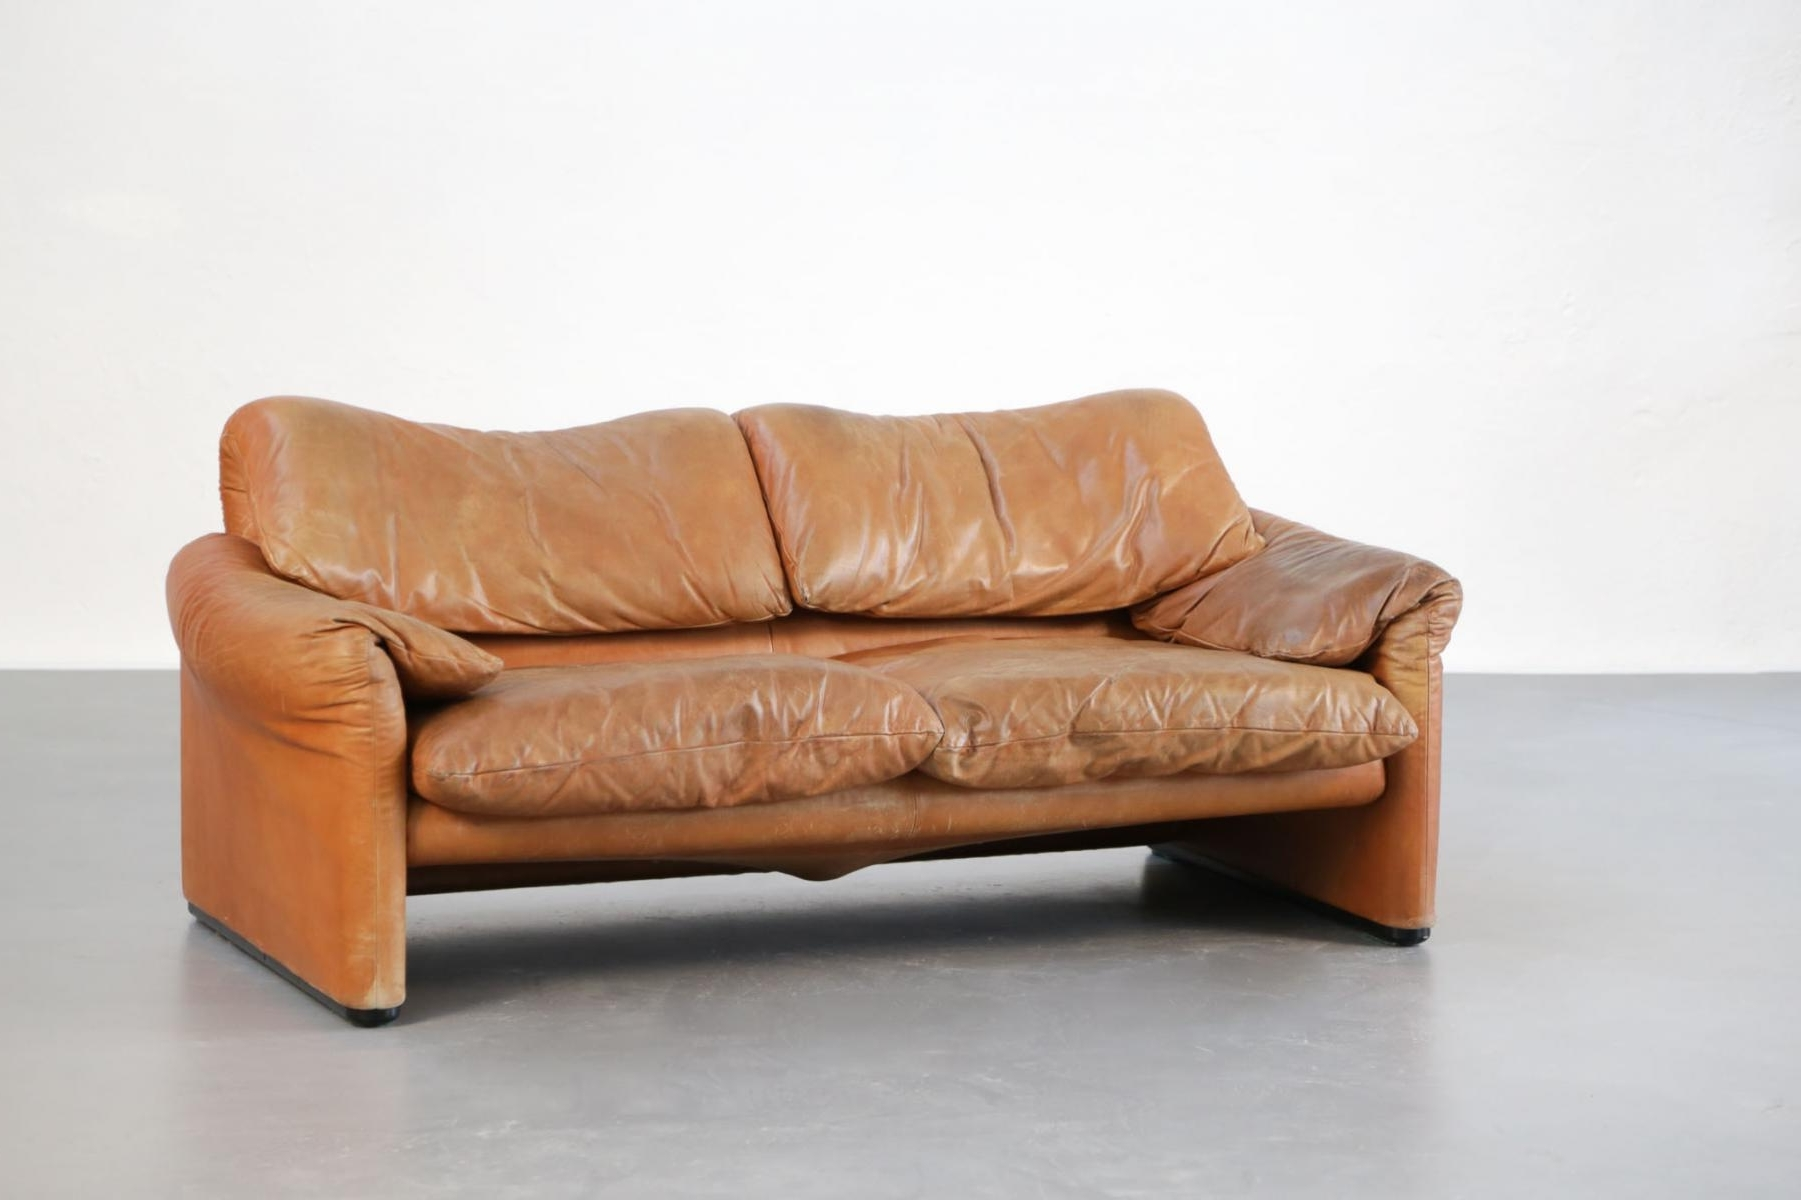 Preferred Vintage Maralunga Sofavico Magistretti For Cassina For Sale At In Vintage Sofas (View 14 of 15)